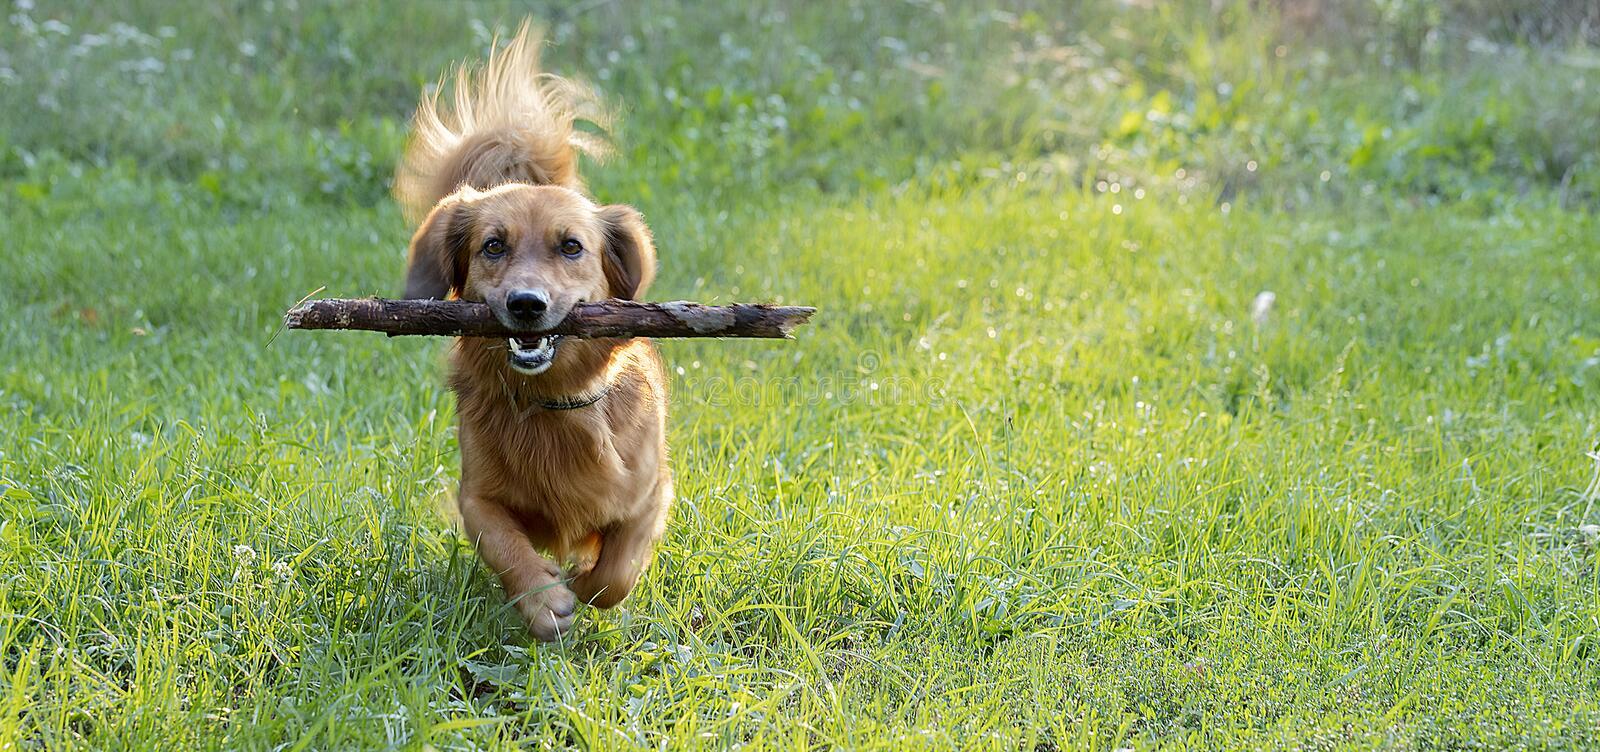 Happy dog dachshund playing with a branch outdoors on a green lawn stock image